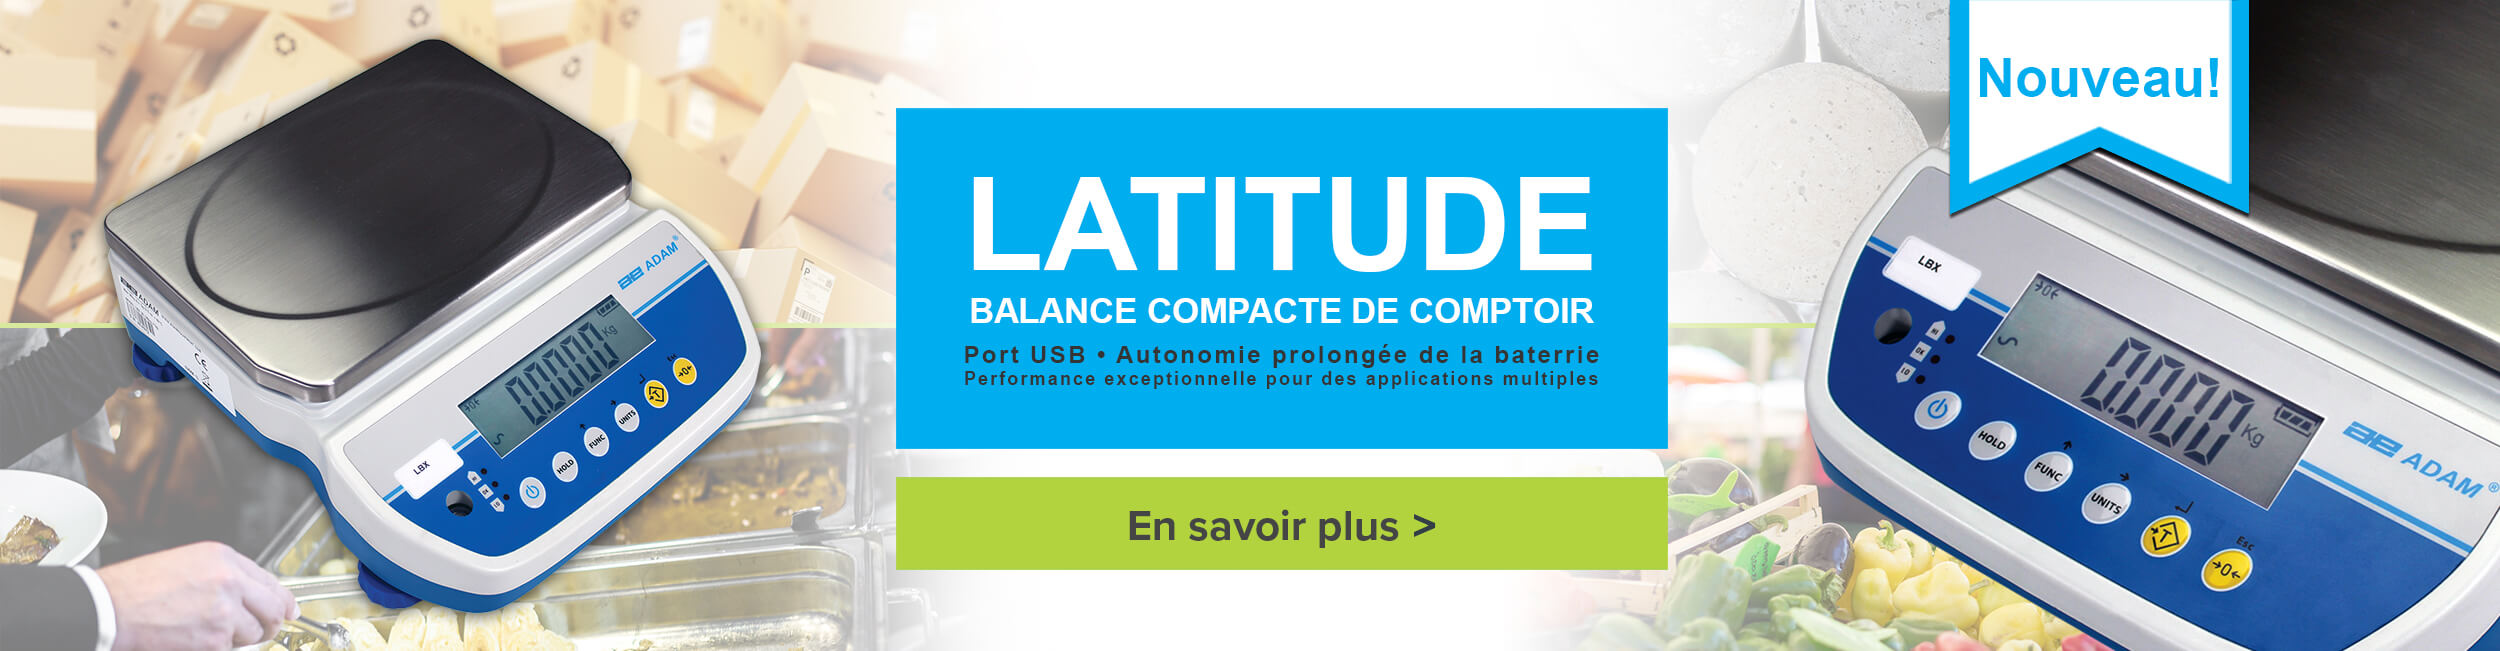 Latitude Balance compacte de comptoir. Port USB - Autonomie prolongée de la baterrie - Performance exceptionnelle pour des applications multiples.